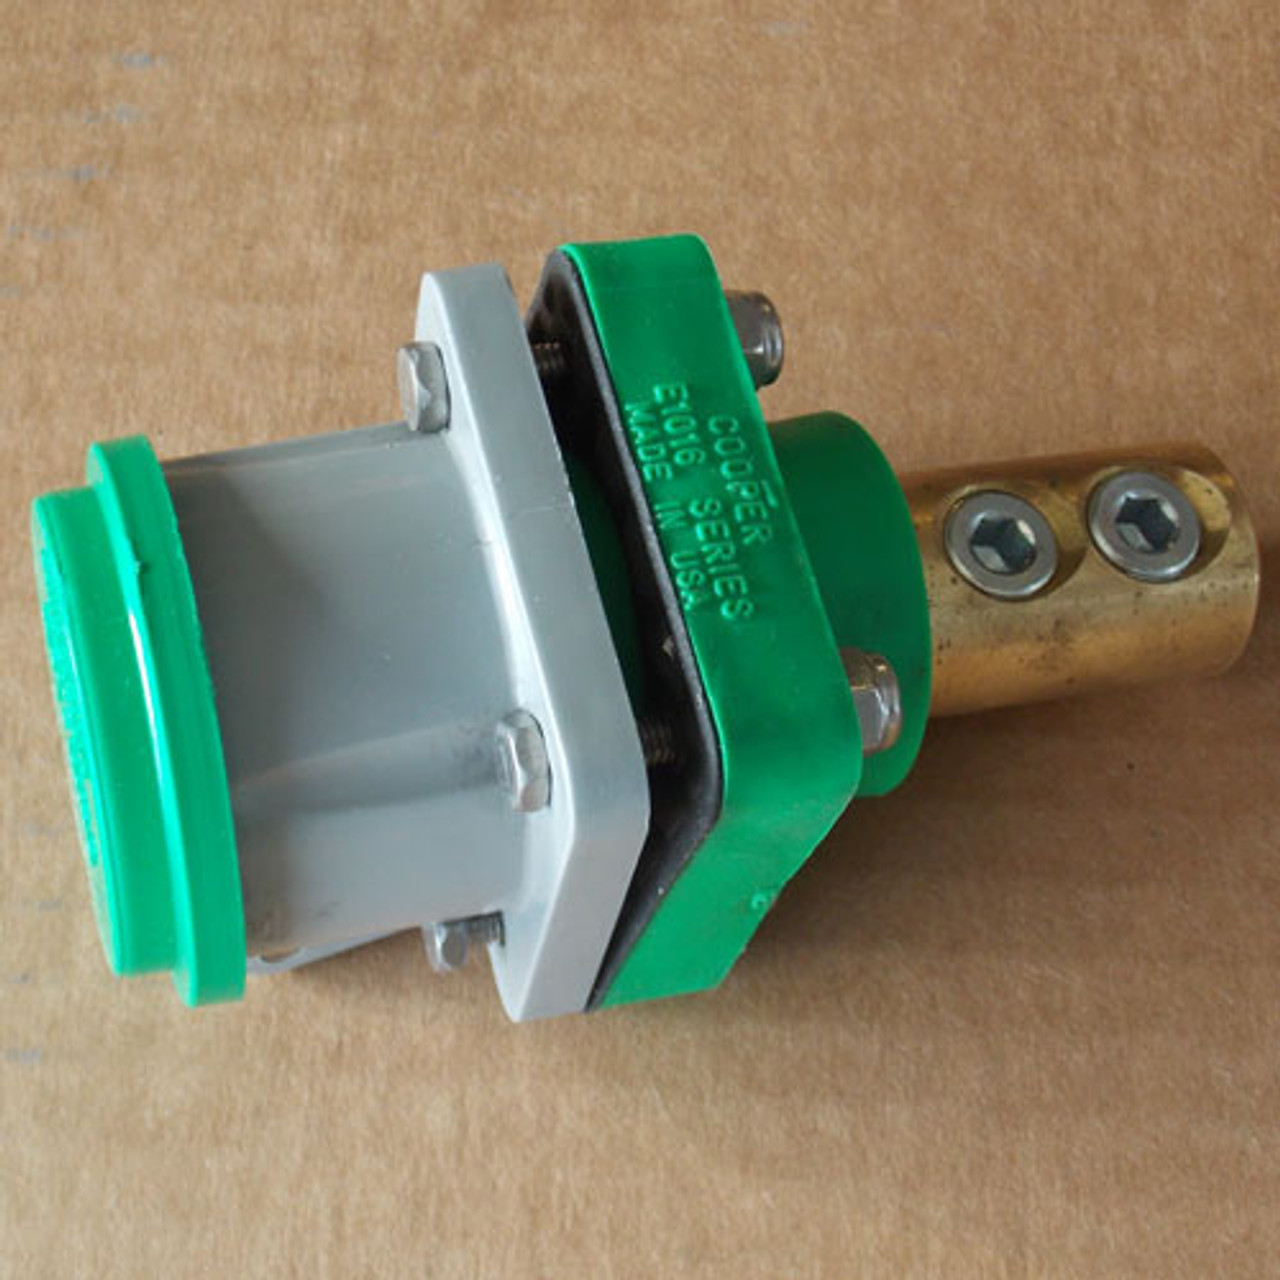 Cooper Crouse Hinds Cam-Lok E1016 Series Connector 400A 600V Green - New